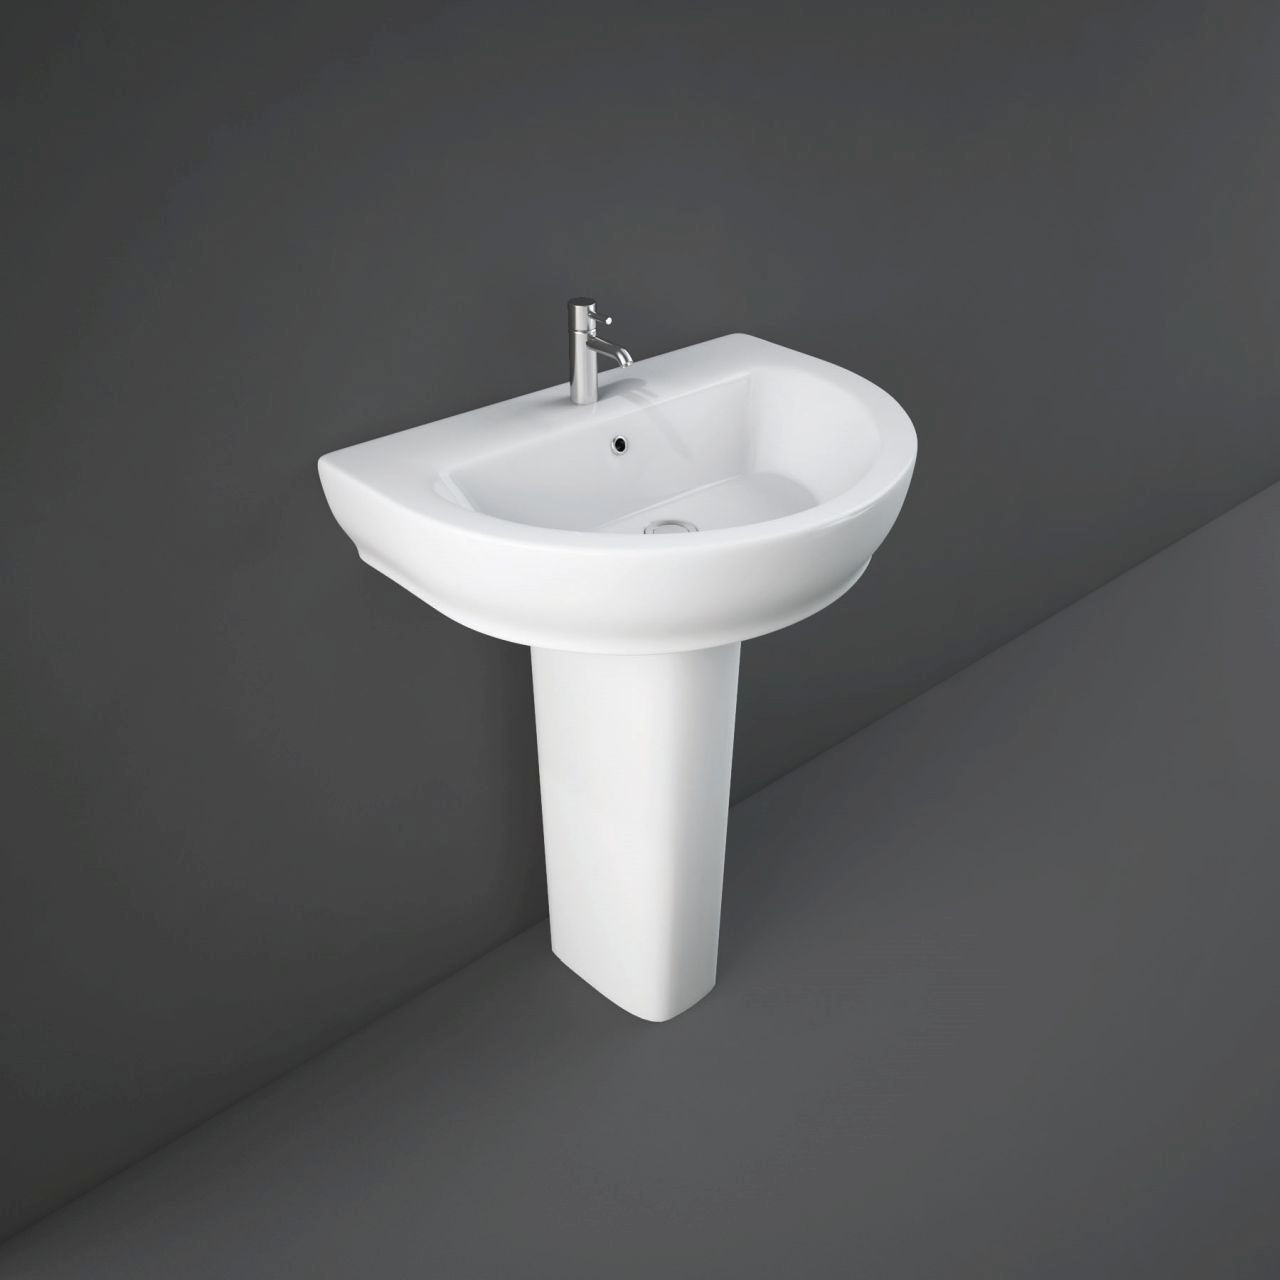 RAK Moon 650mm Basin with 1 Tap Hole and Full Pedestal